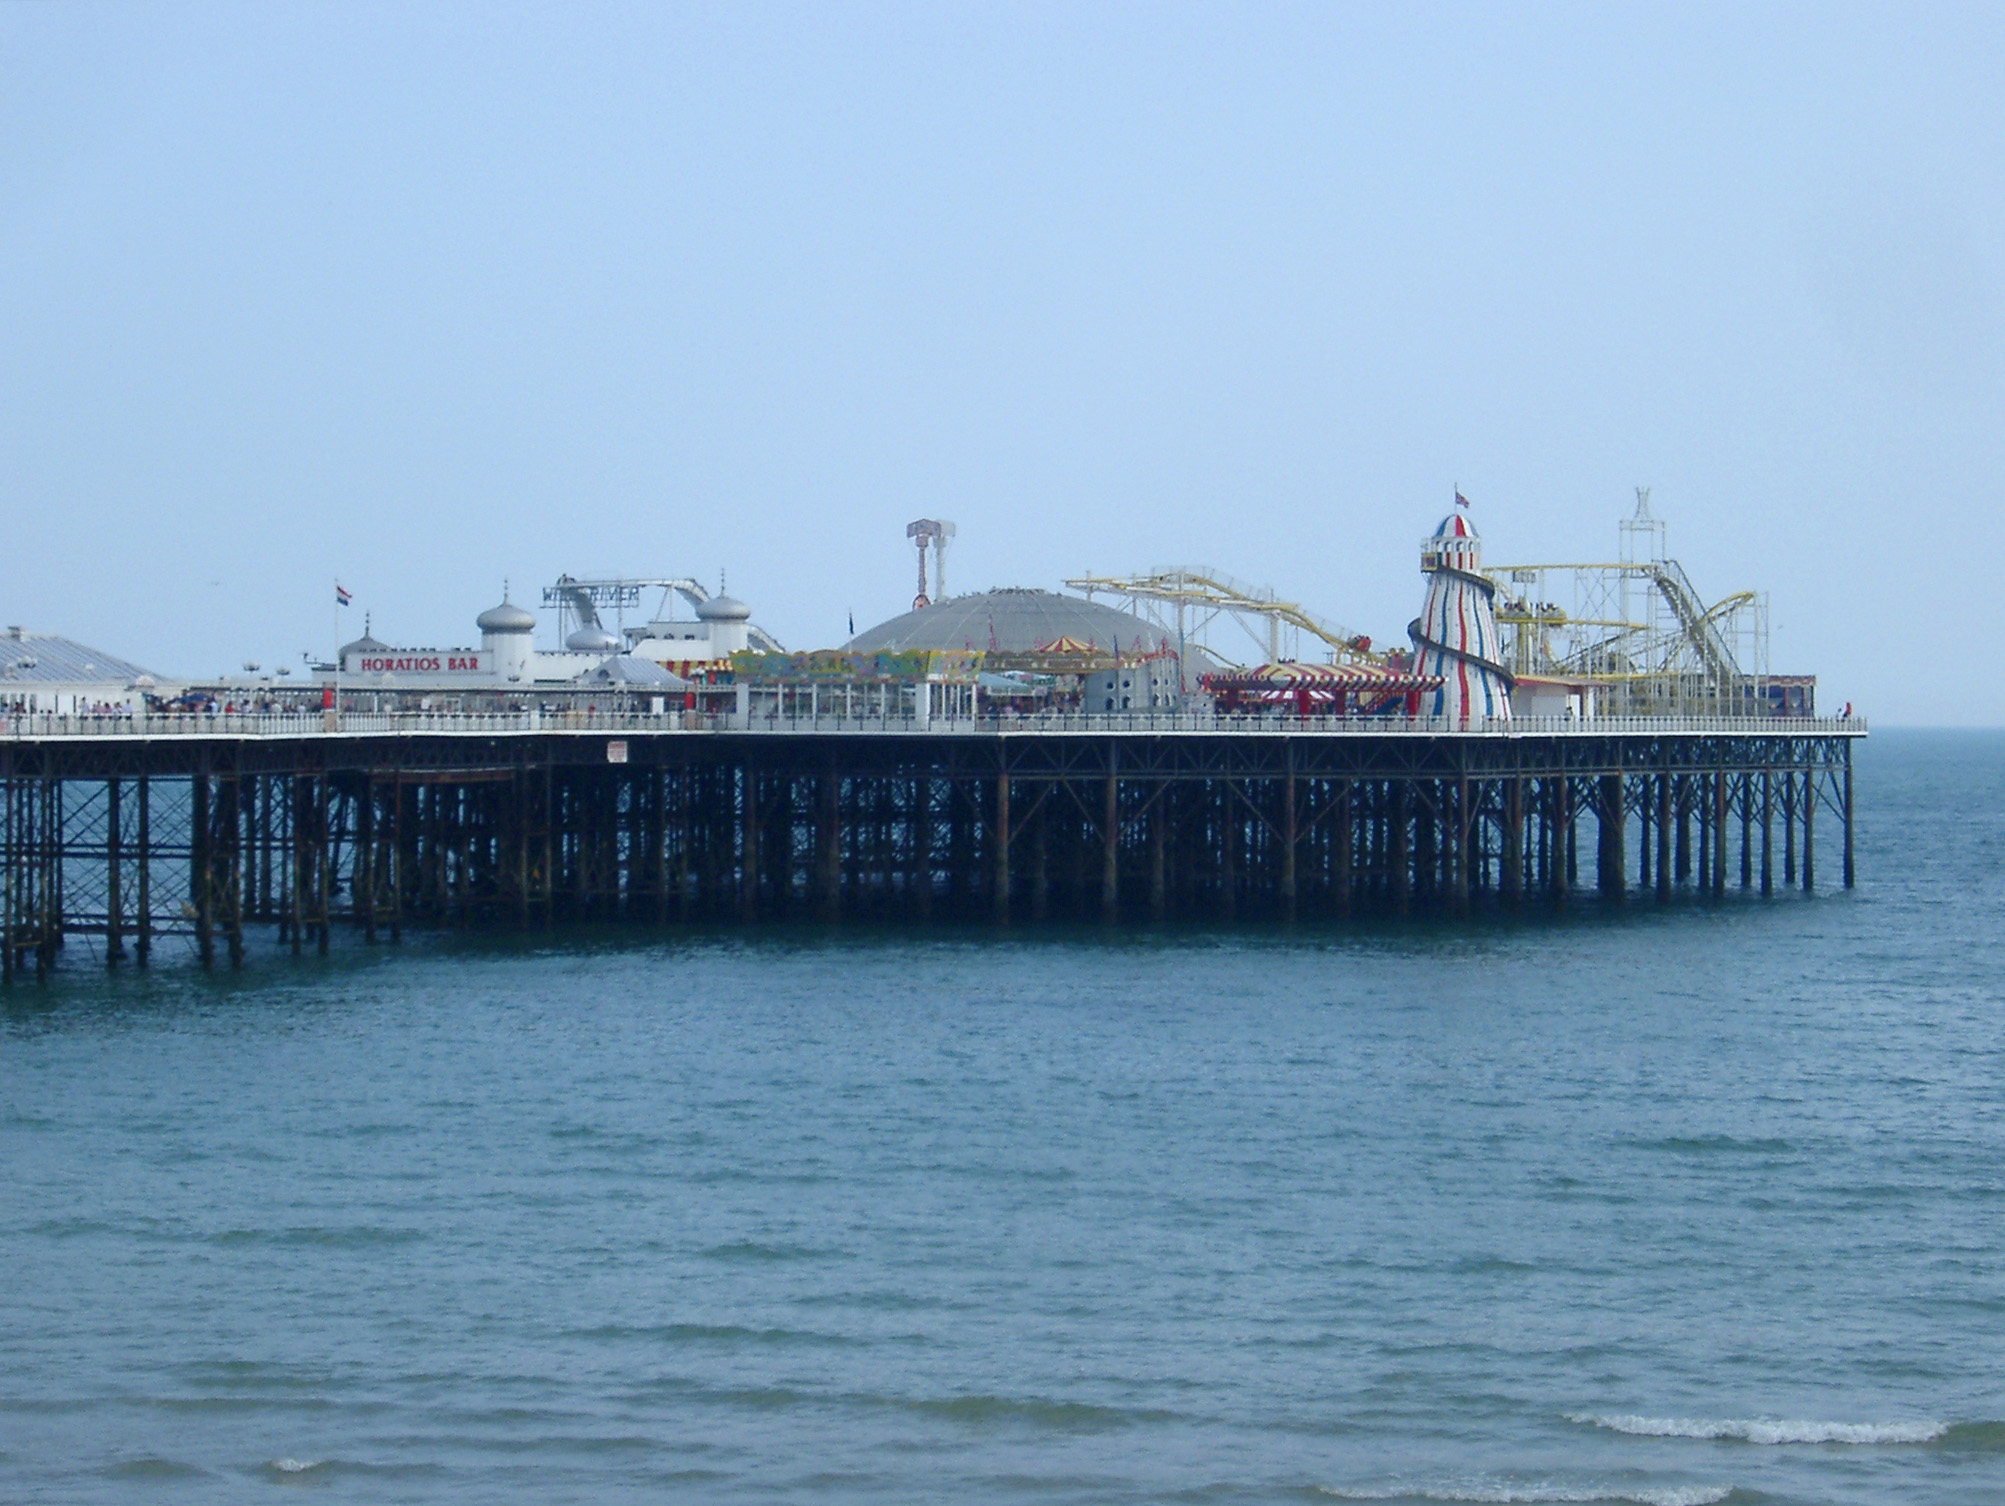 View across the water of the Brighton Pier with its historical buildings now housing an amusement park and popular tourist attraction